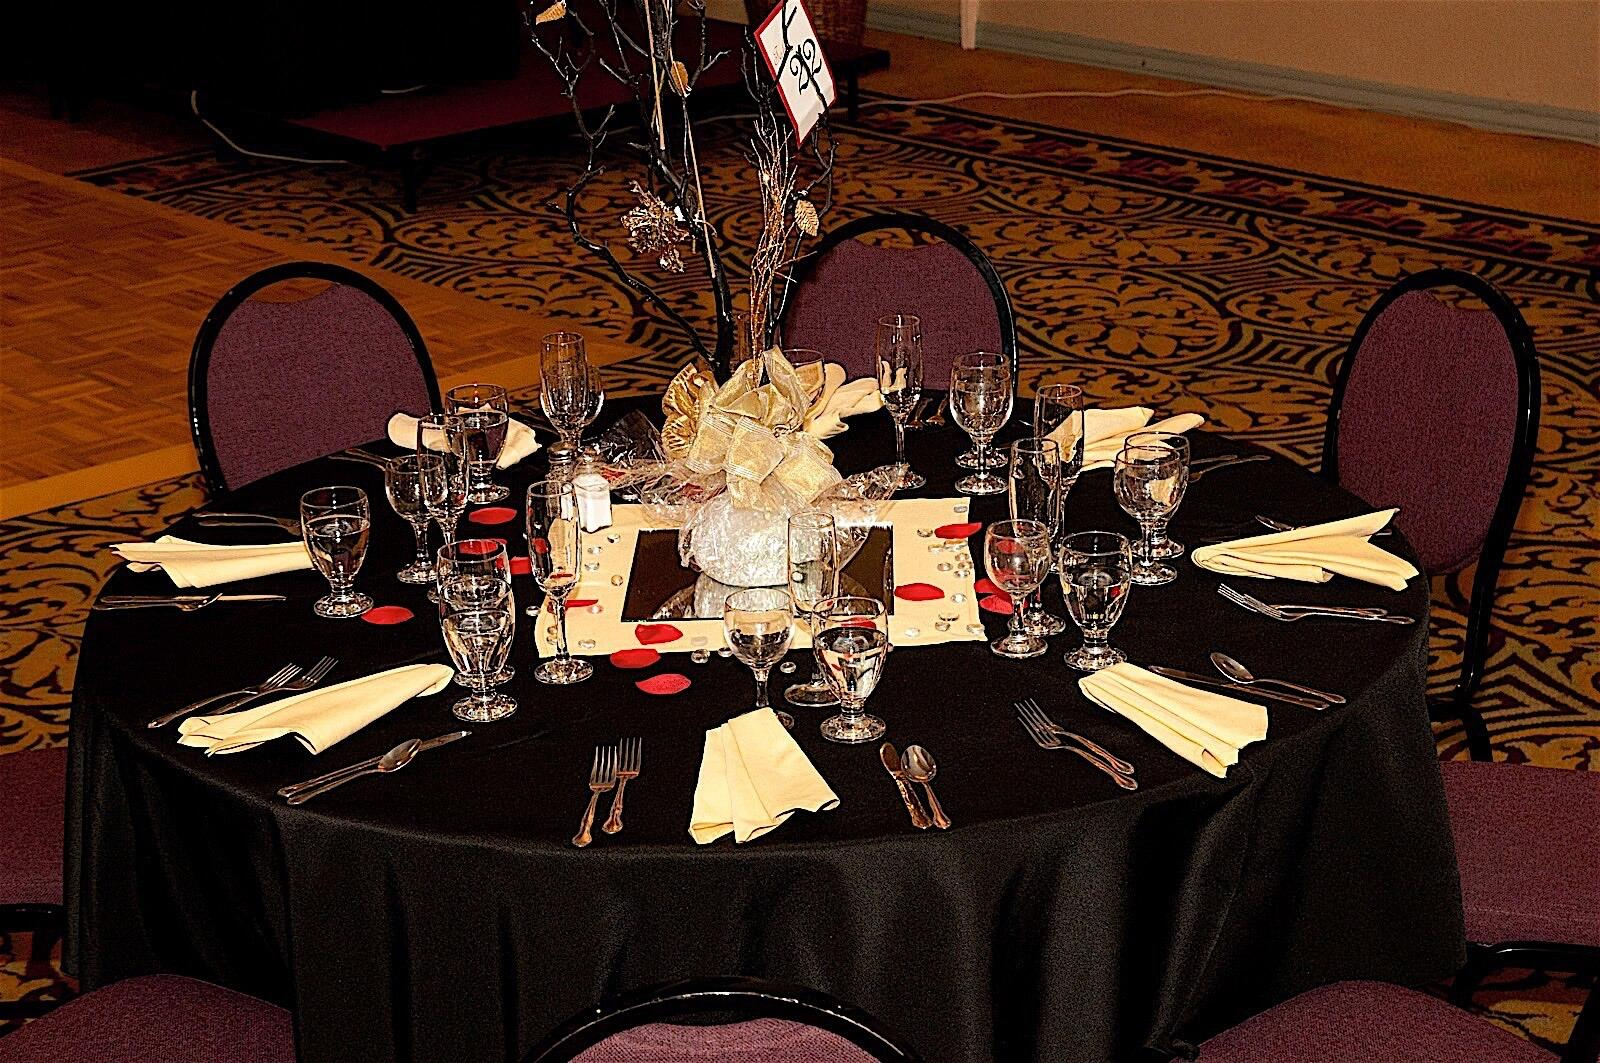 Wedding Table Setting at Hotel Fresno Event Space